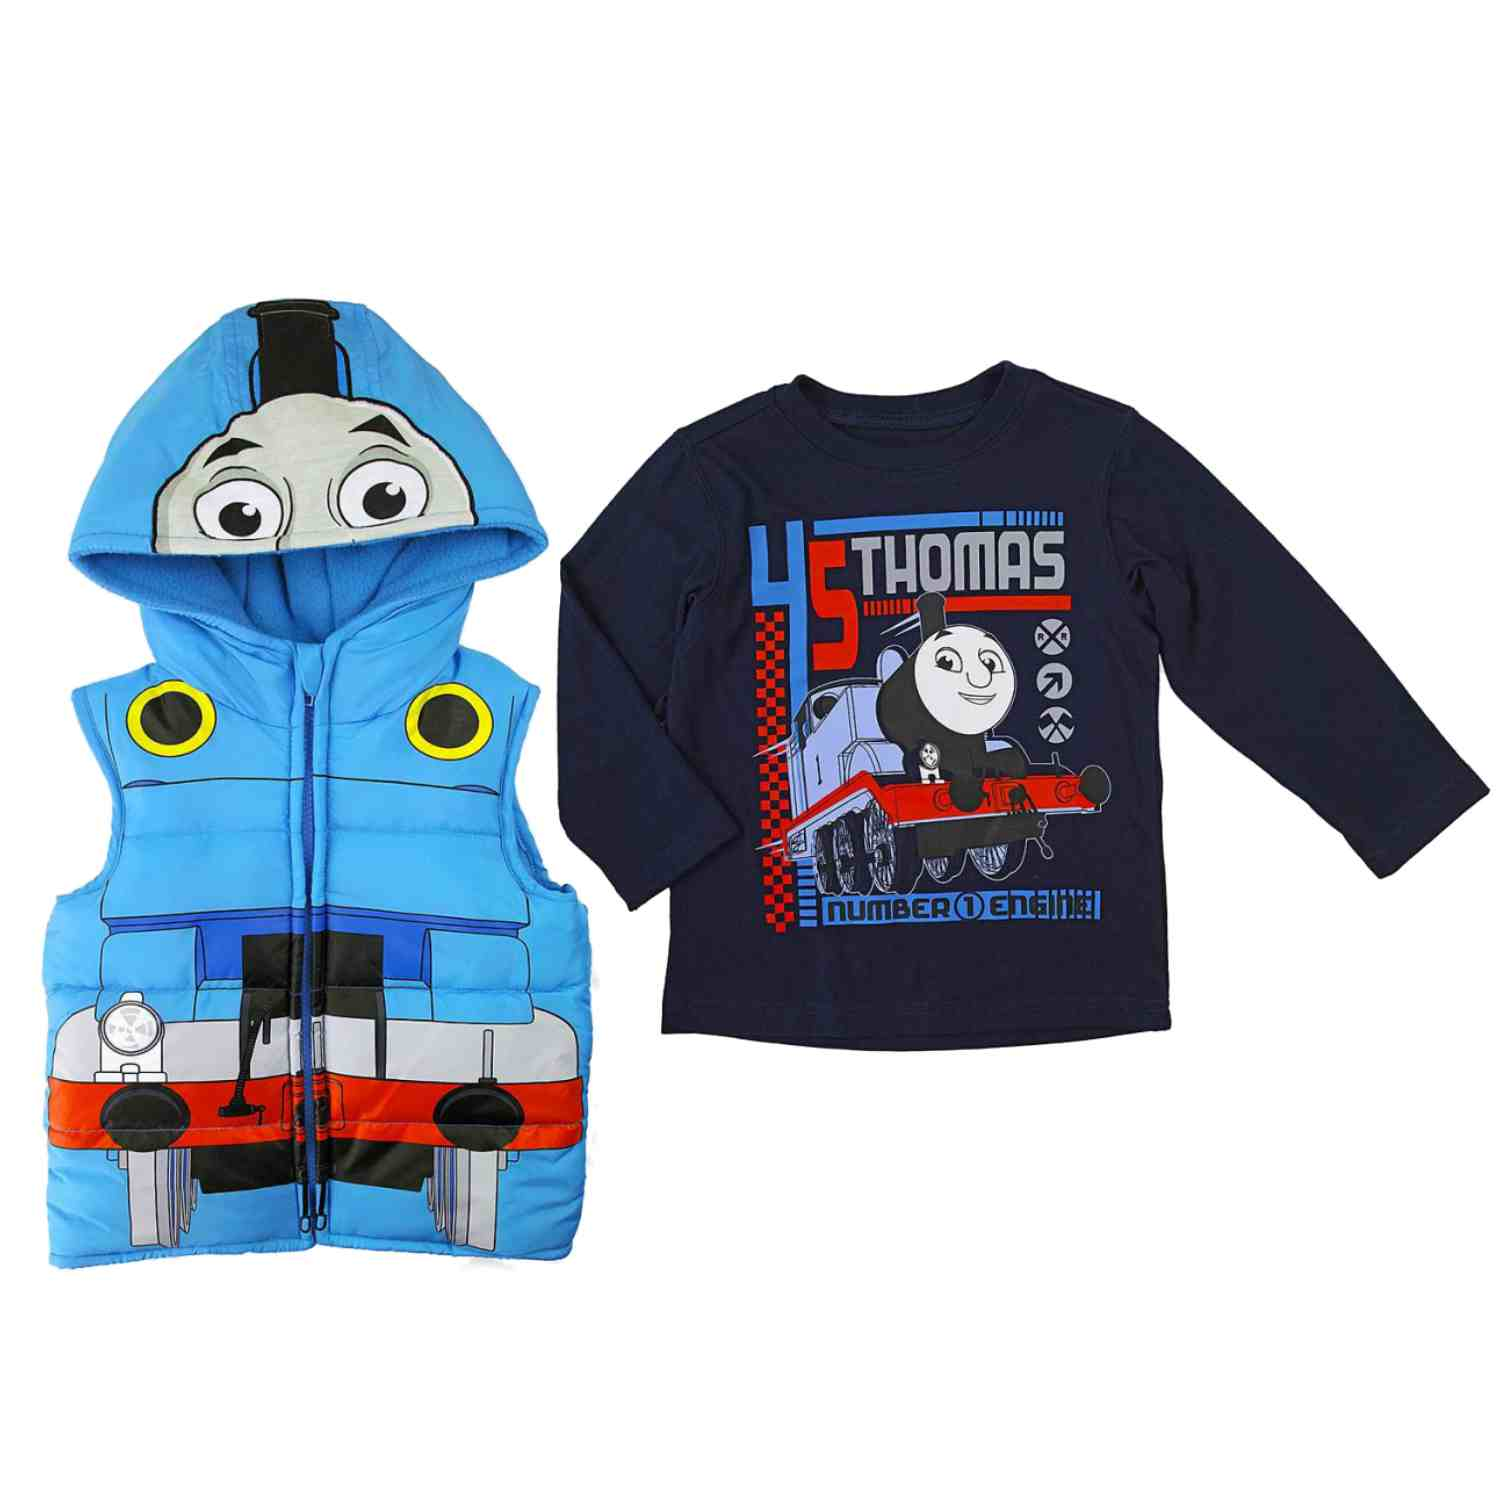 Thomas & Friends Infant & Toddler Boys Blue Train Engine Shirt & Vest Set